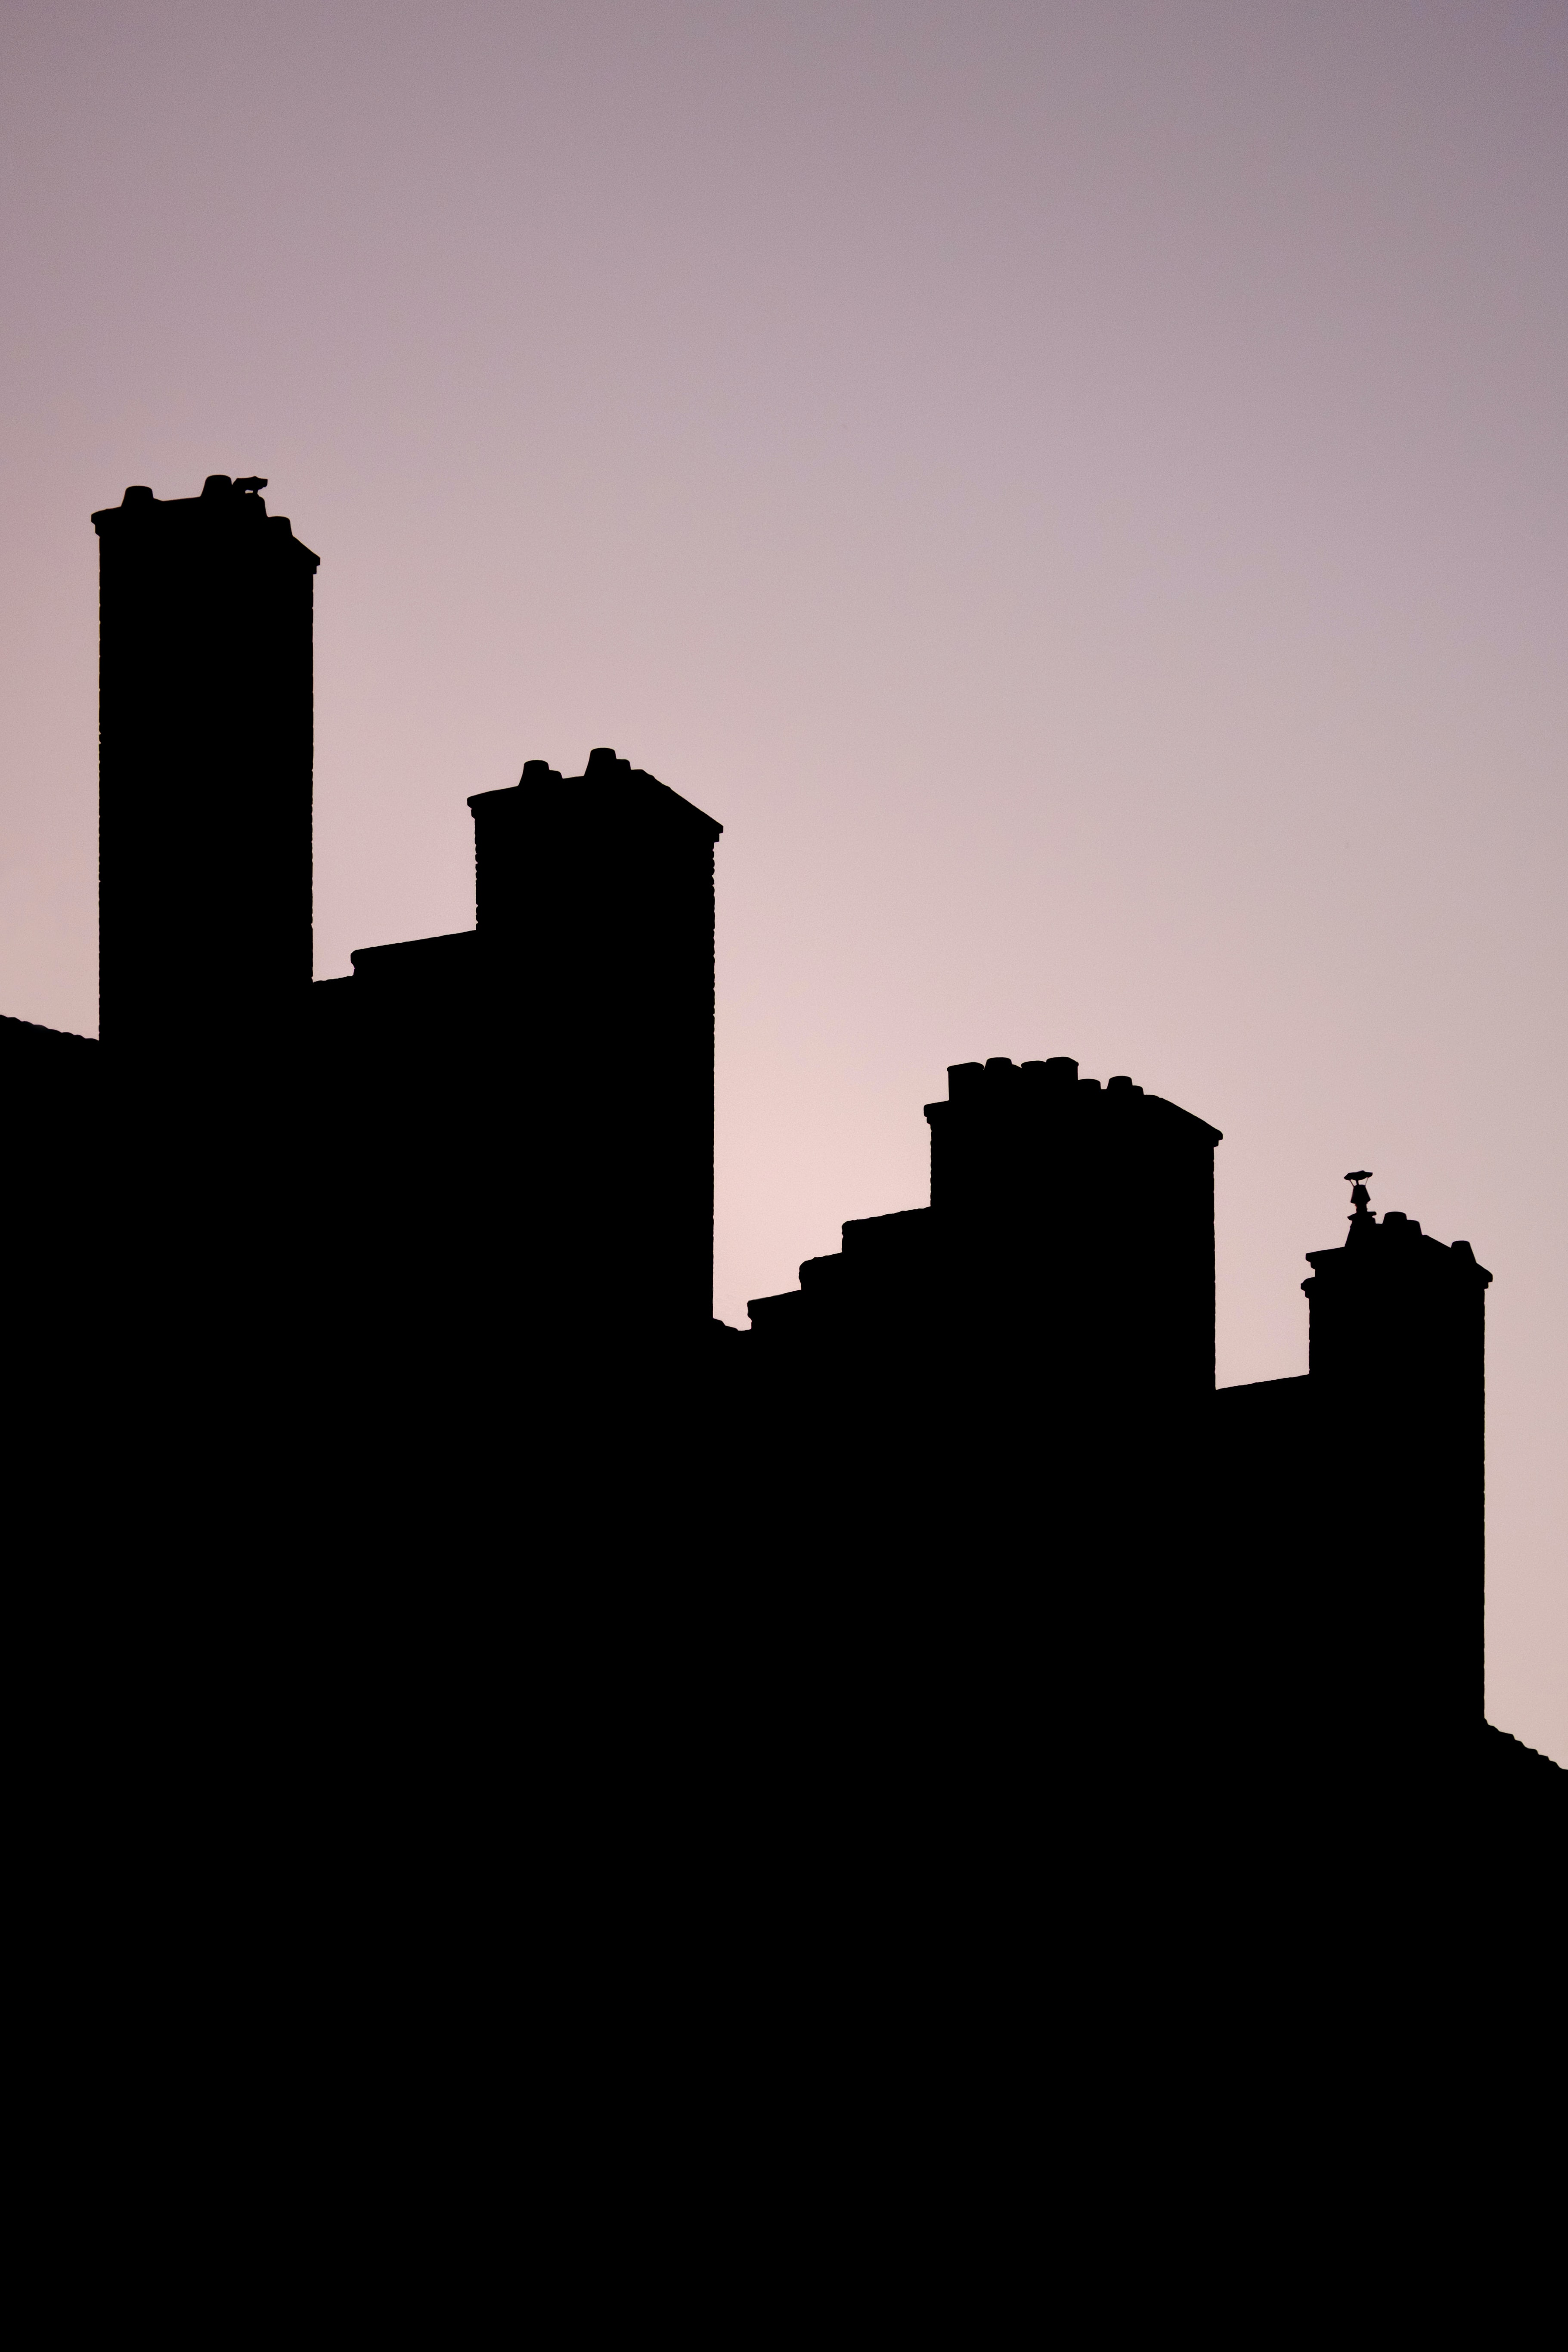 Silhouettes of buildings in Lyon under a pale evening sky